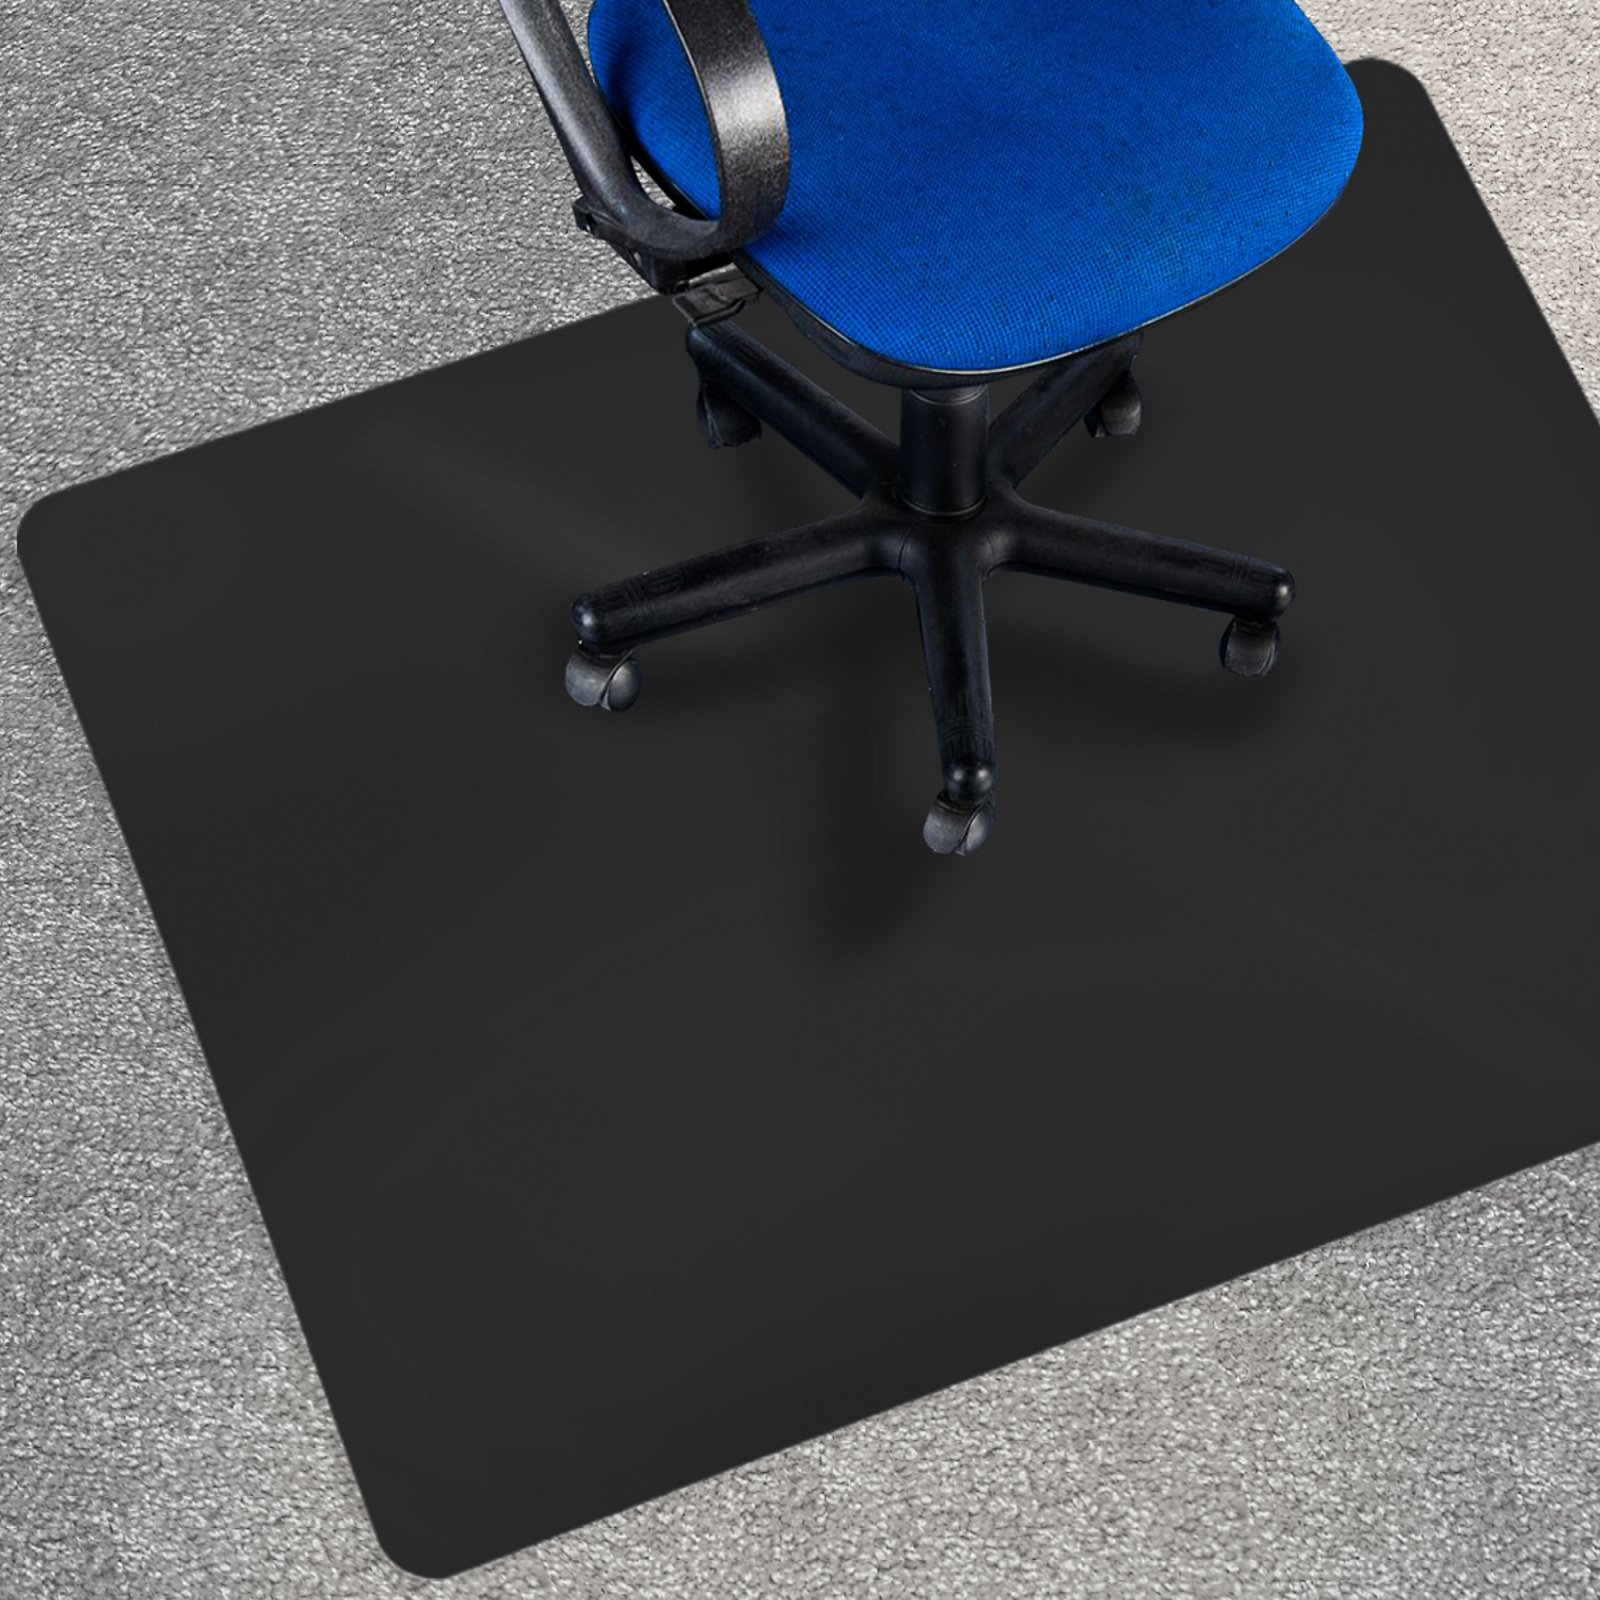 office marshal black polycarbonate office chair mat 36 x 48